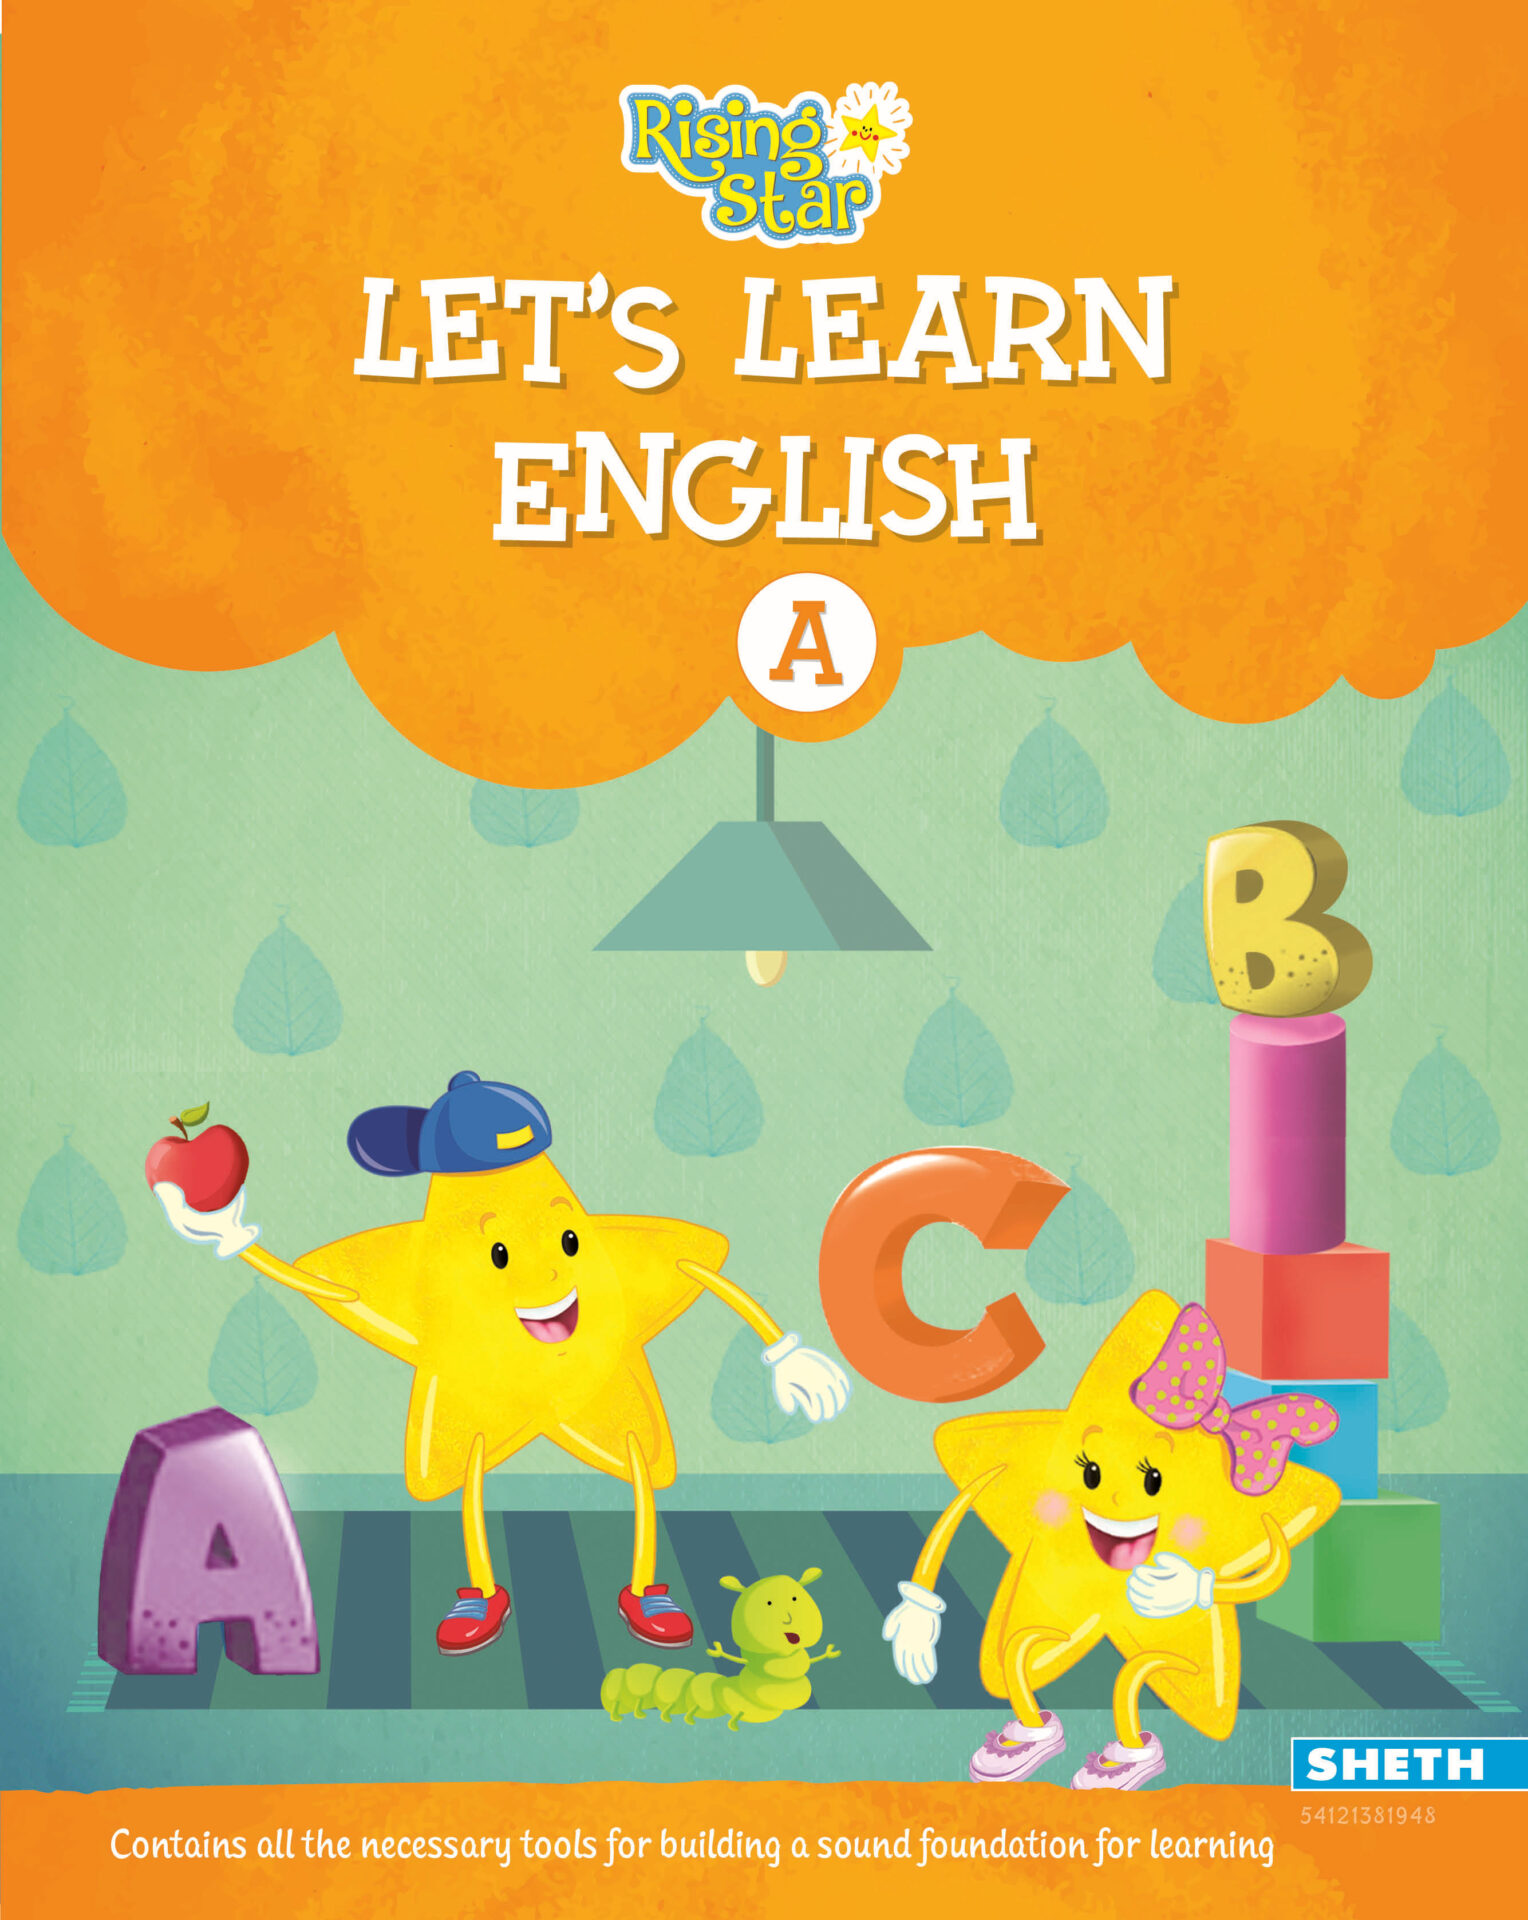 Rising Star Lets Learn English A 0 1